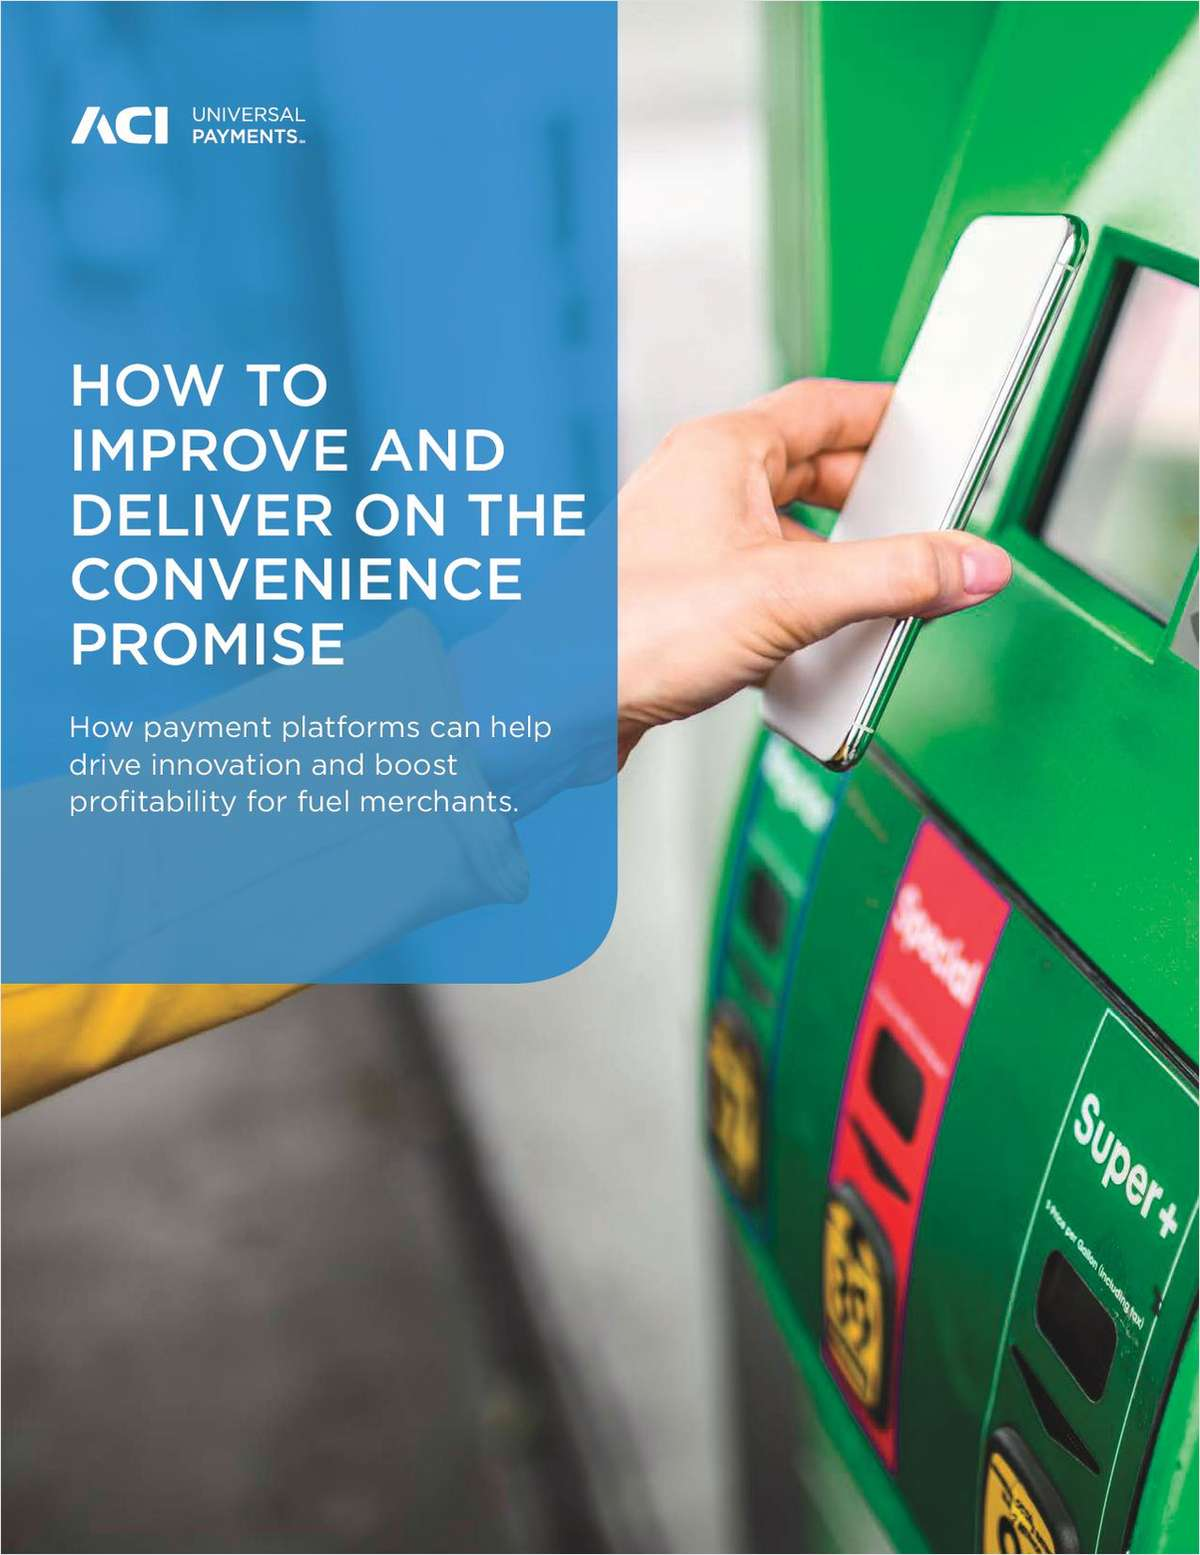 How Fuel Merchants Can Improve and Deliver on the Convenience Promise